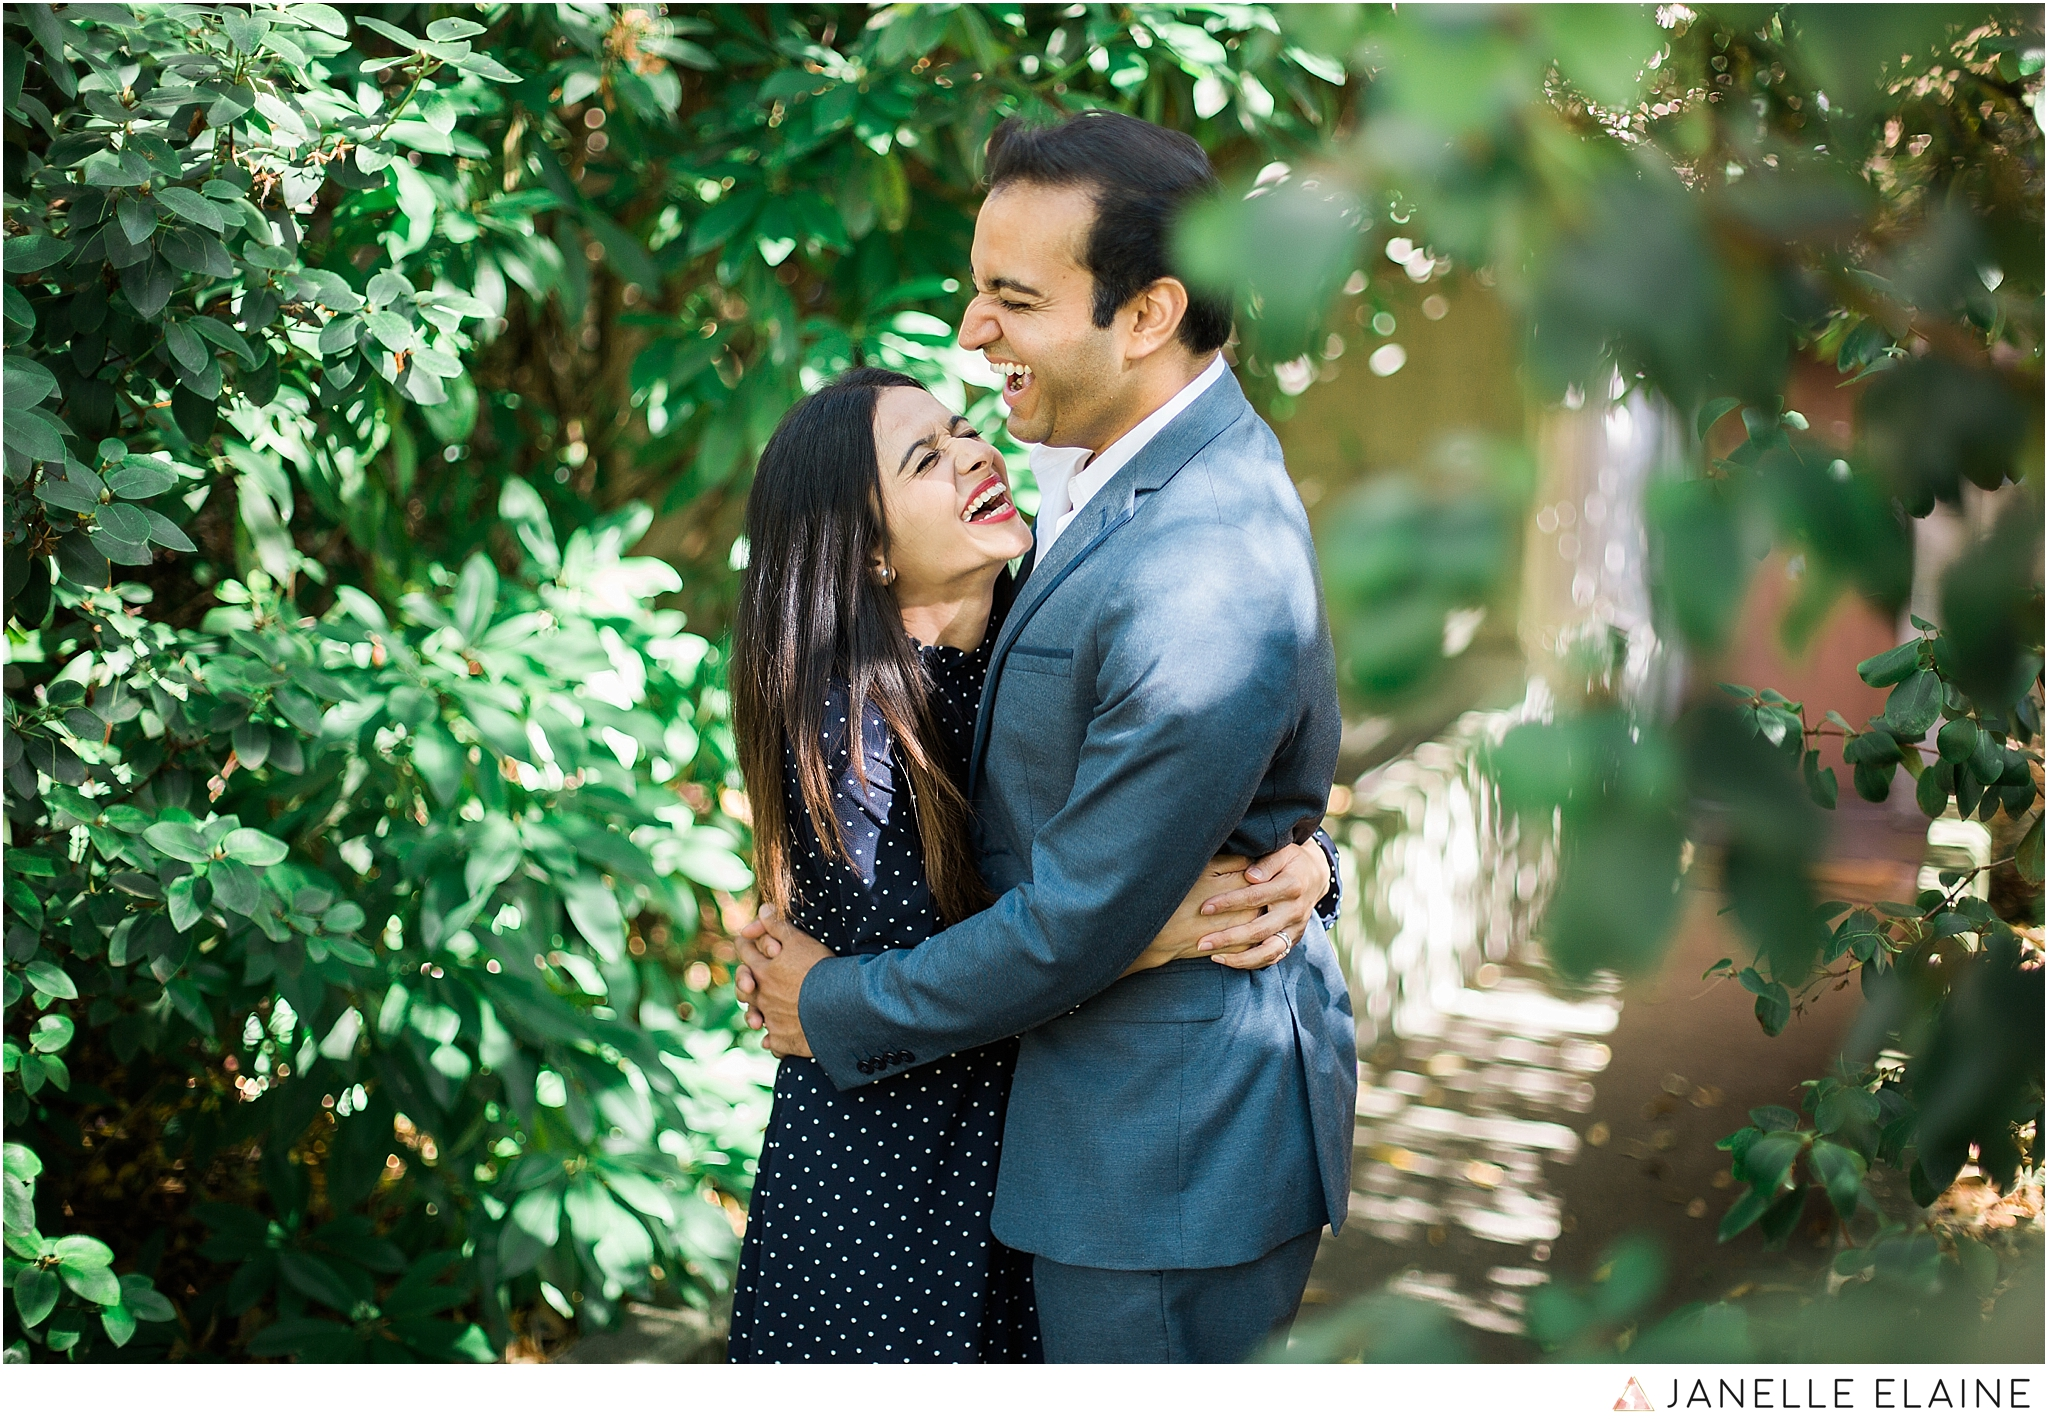 janelle elaine photography-zain and umema-seattle-uw-red square-engagement-photographer-55.jpg